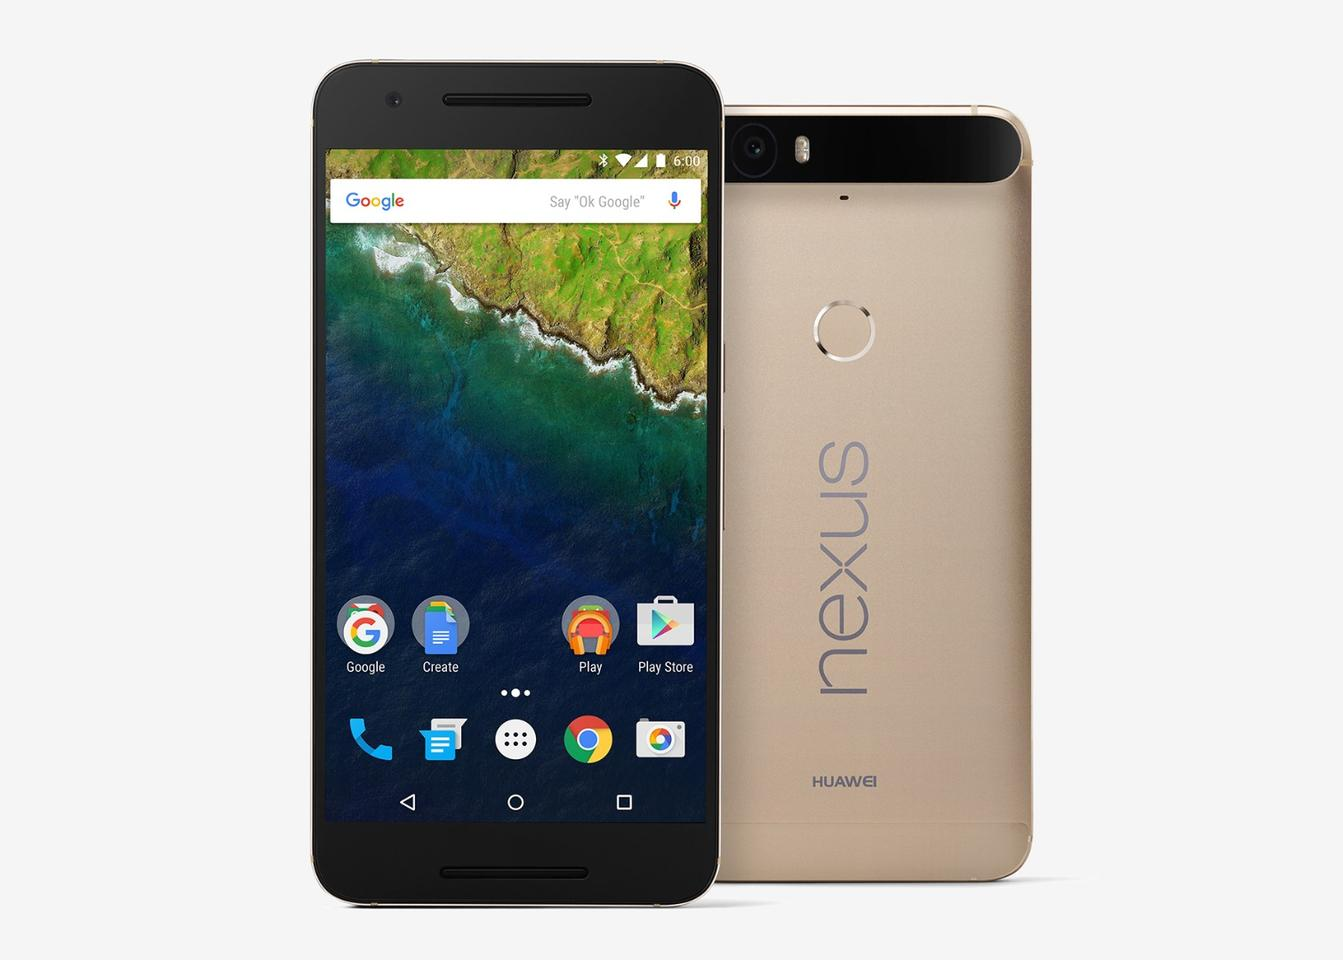 The Nexus 6P is now available in a gold color